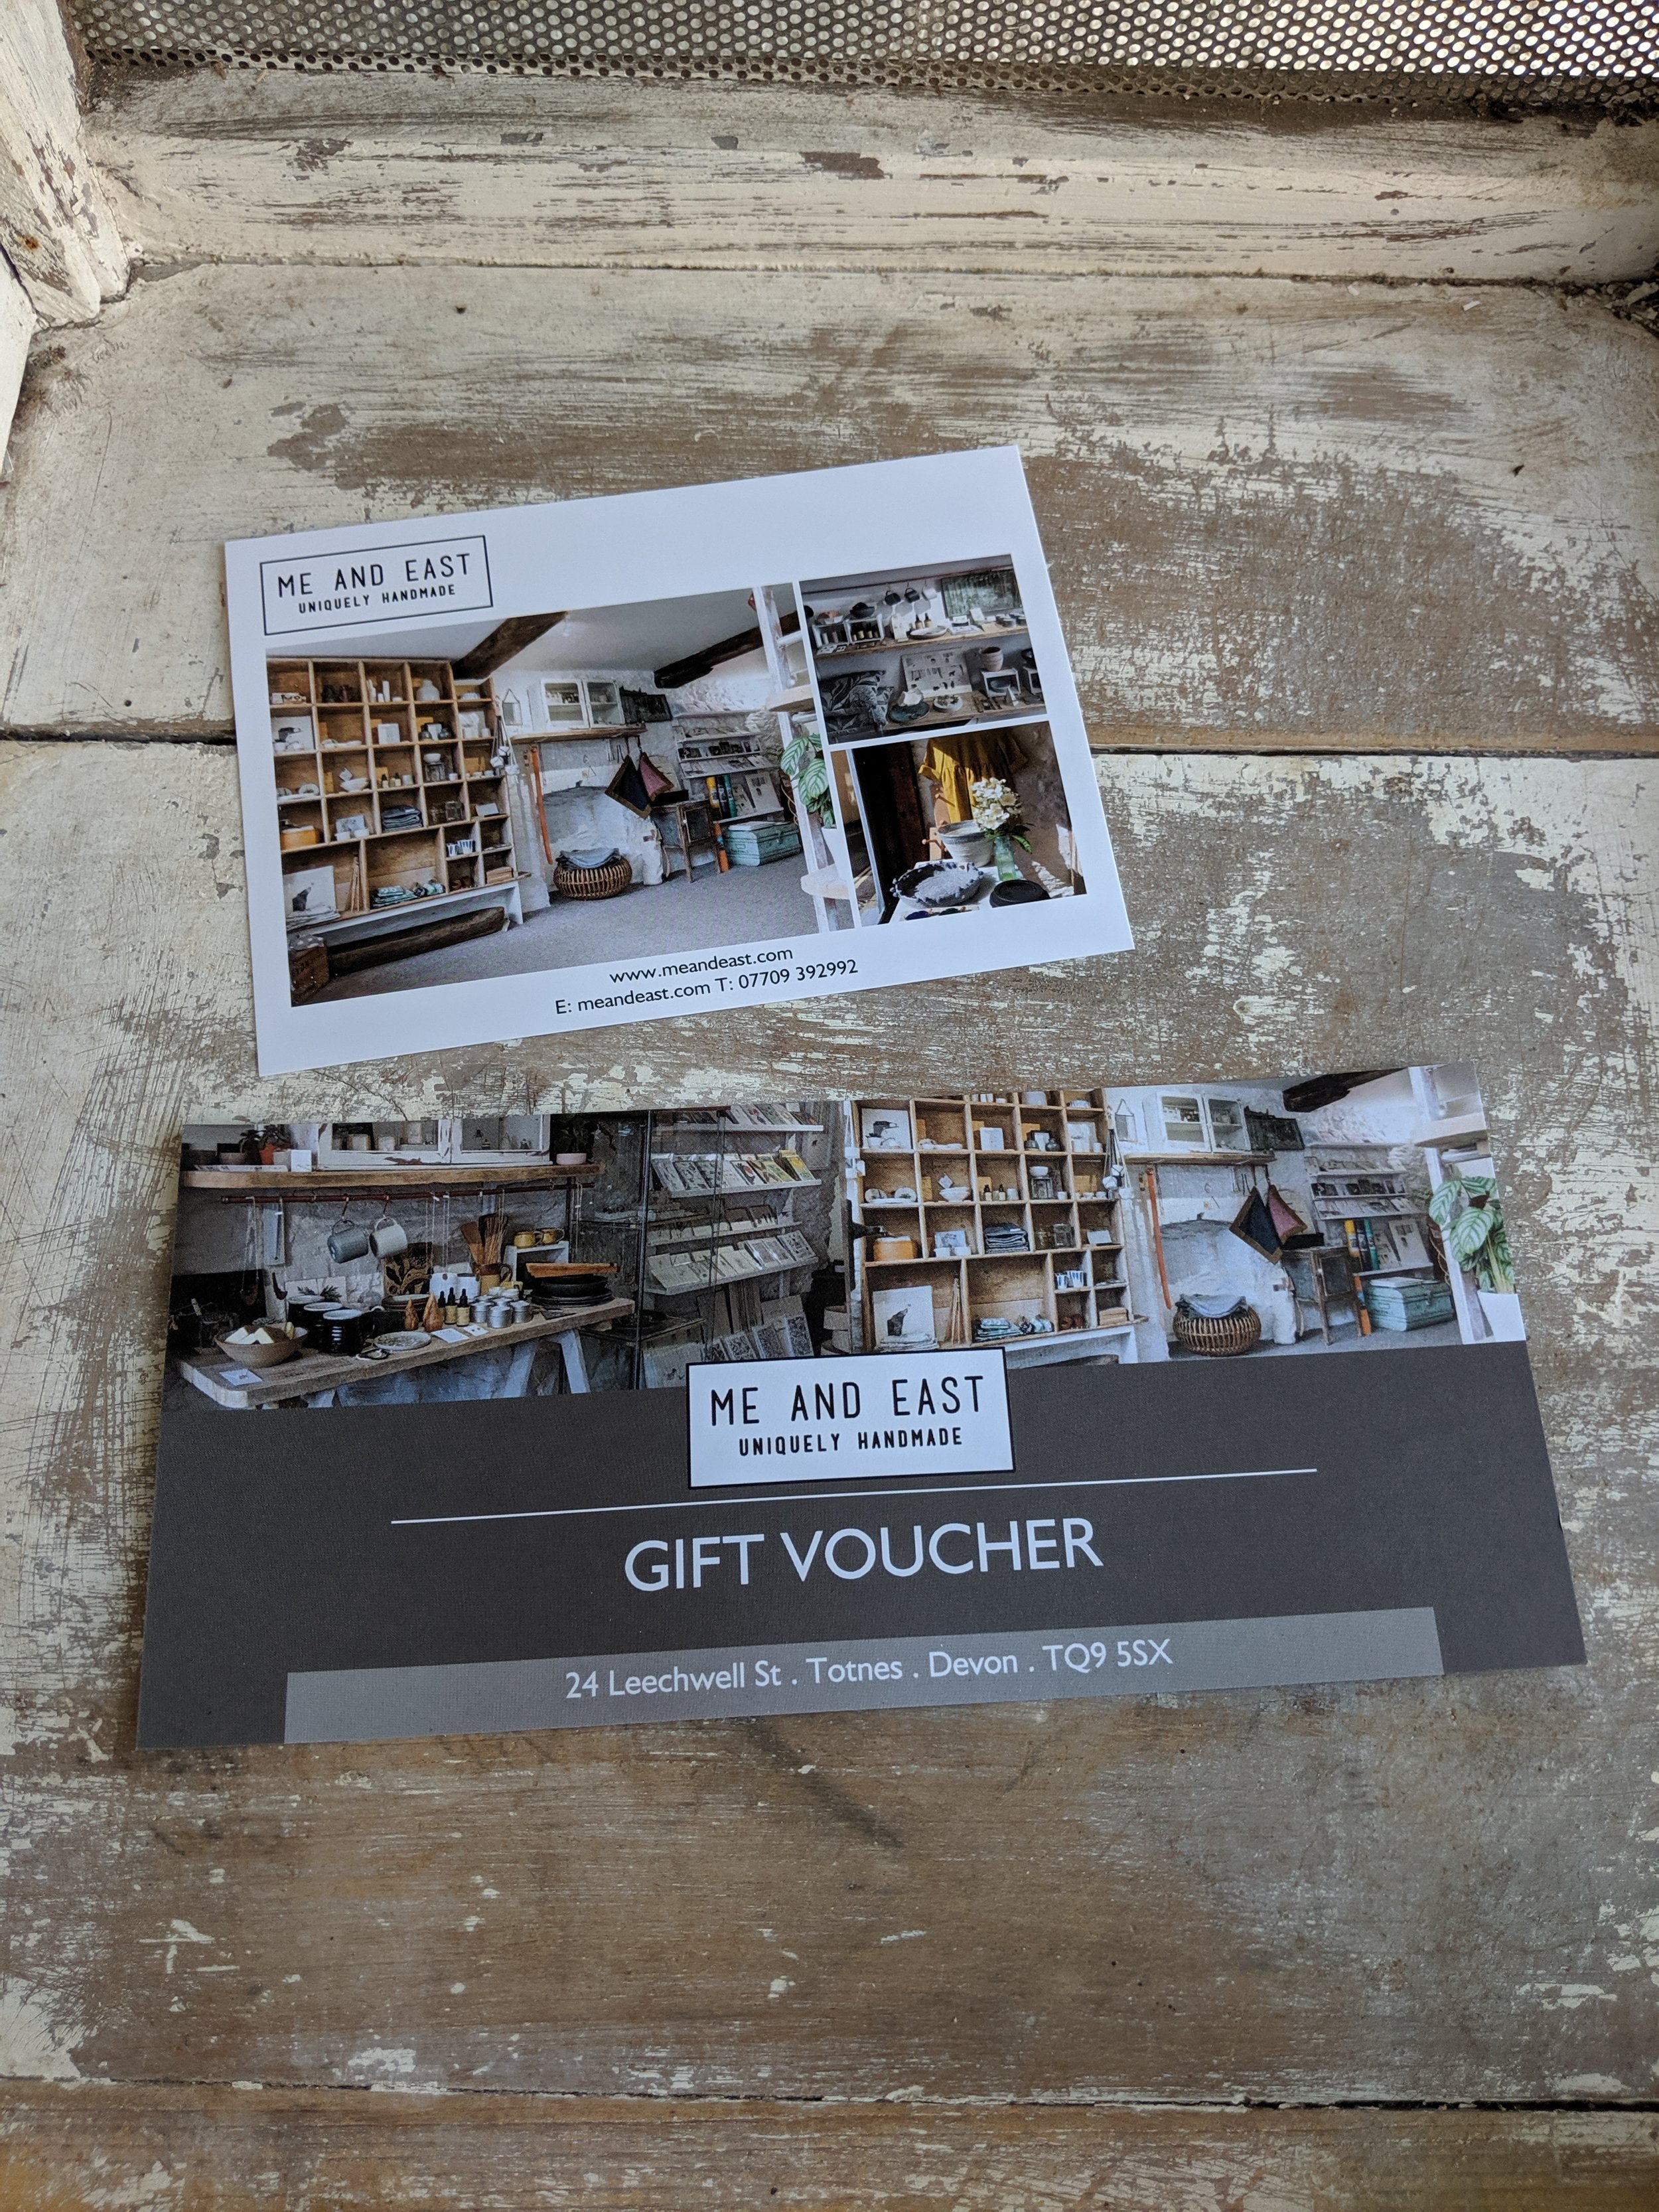 Me and East gift voucher